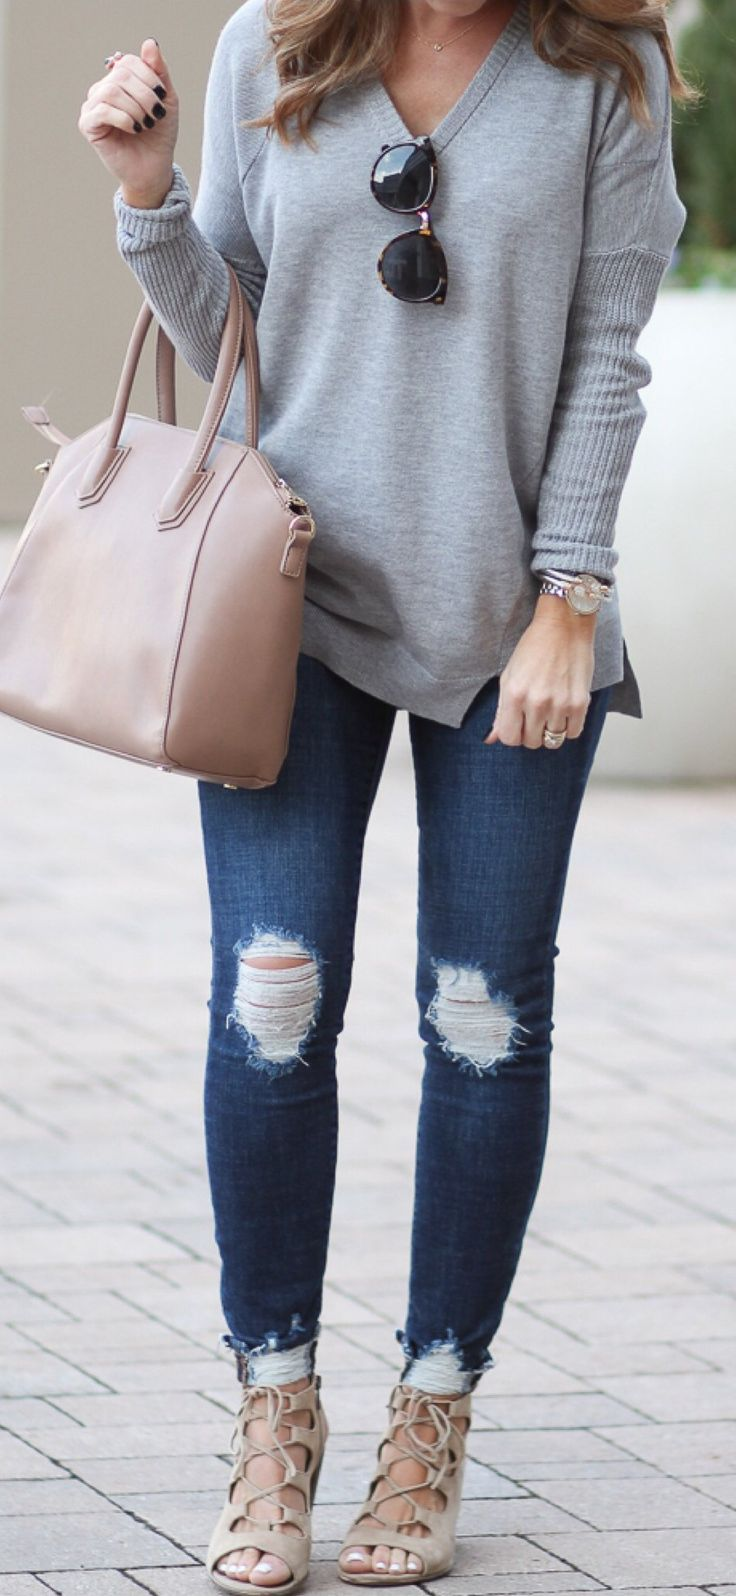 Grey Knit / Pink Leather Tote Bag / Ripped Skinny Jeans / Laced Up Booties... | Street Fashion